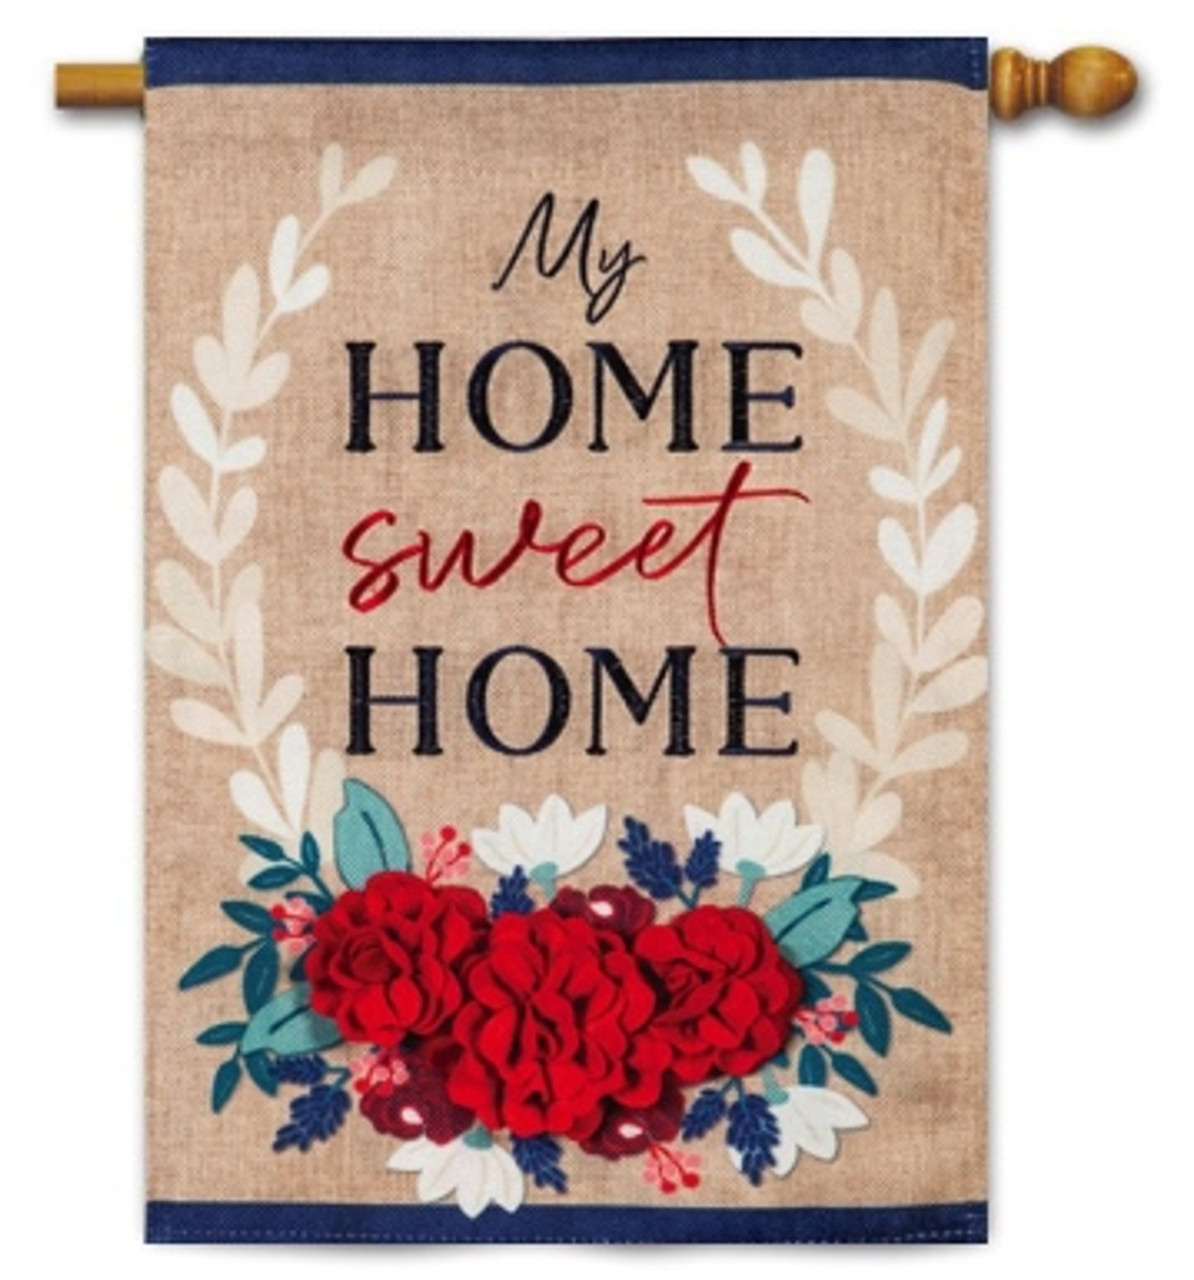 Patriotic Floral Home Sweet Home Burlap House Flag By Evergreen Flags 28 X 44 House Flags